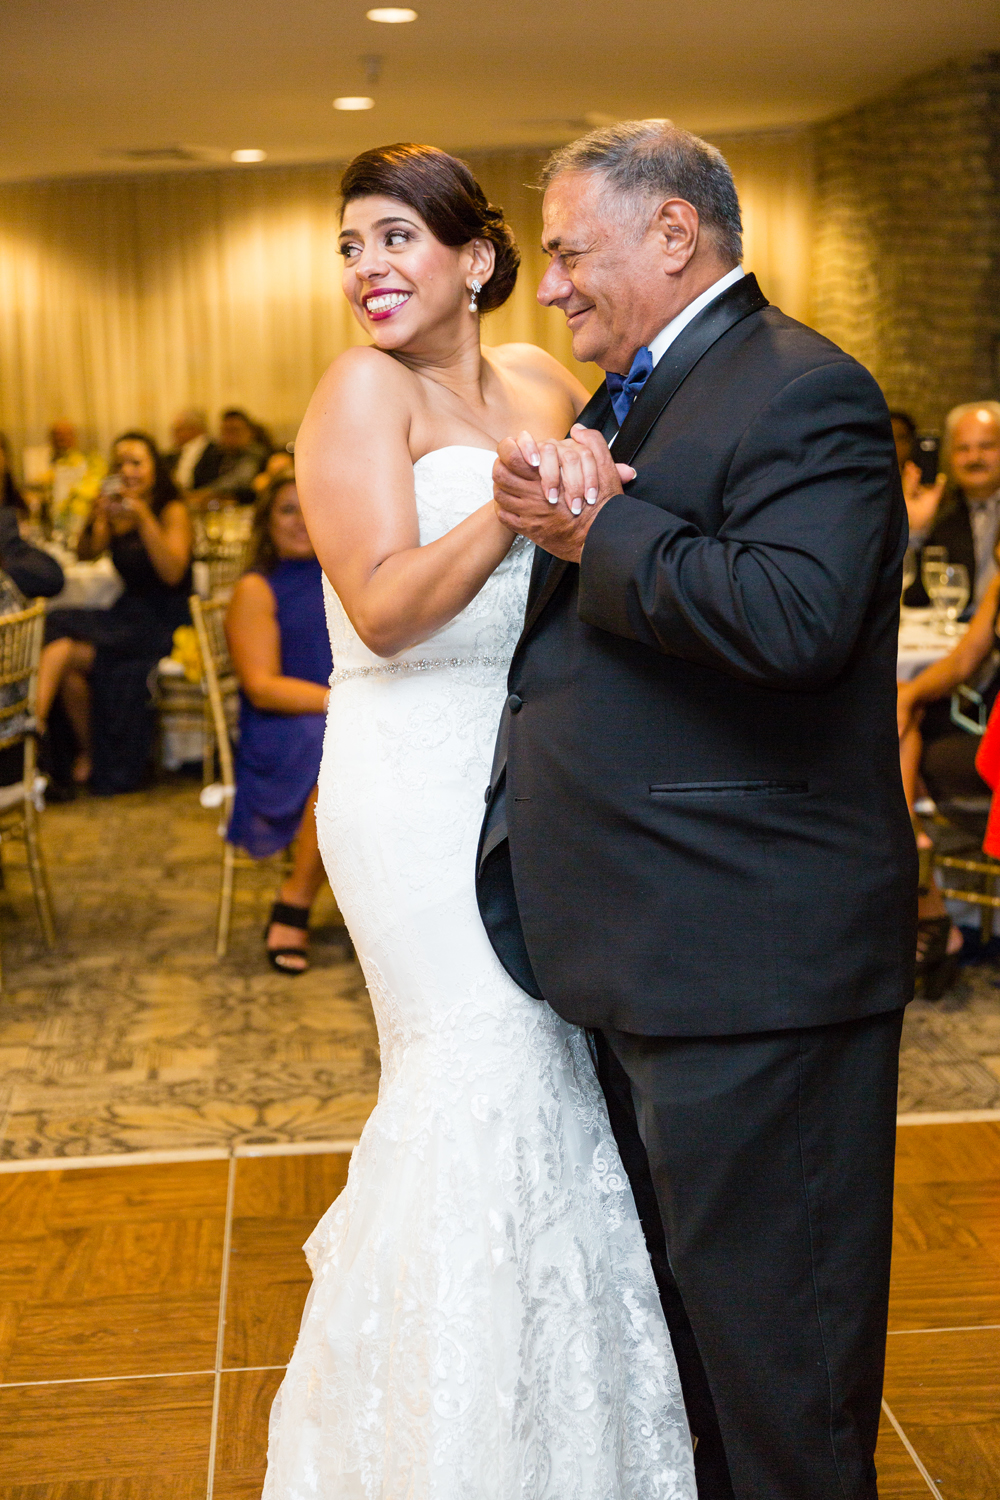 c4e4d-lively-navy-yellow-harbor-wedding-proud-father-dancing-with-bride.jpg